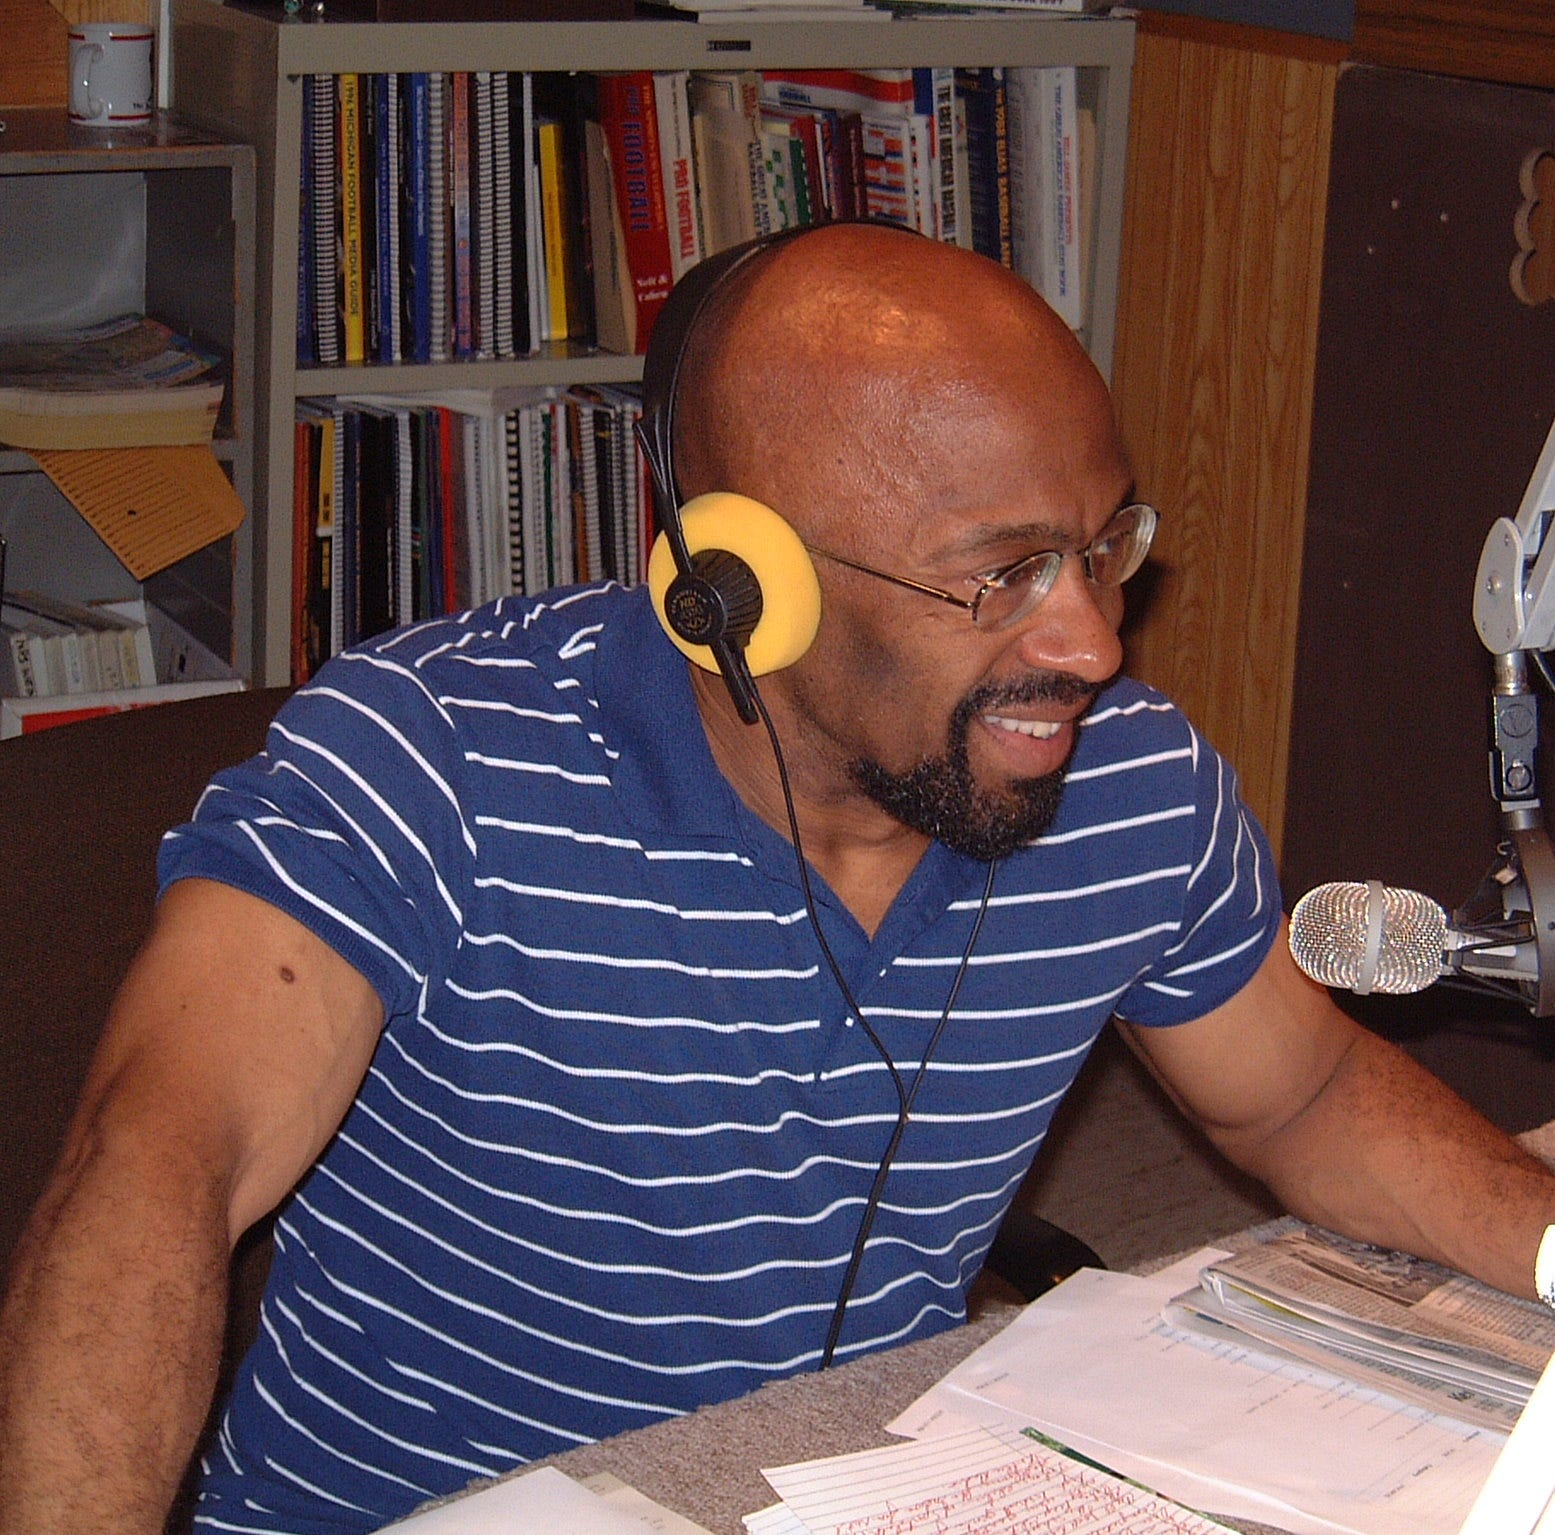 Earle Robinson, veteran WKAR sports radio broadcaster at MSU, passes away. He was 71